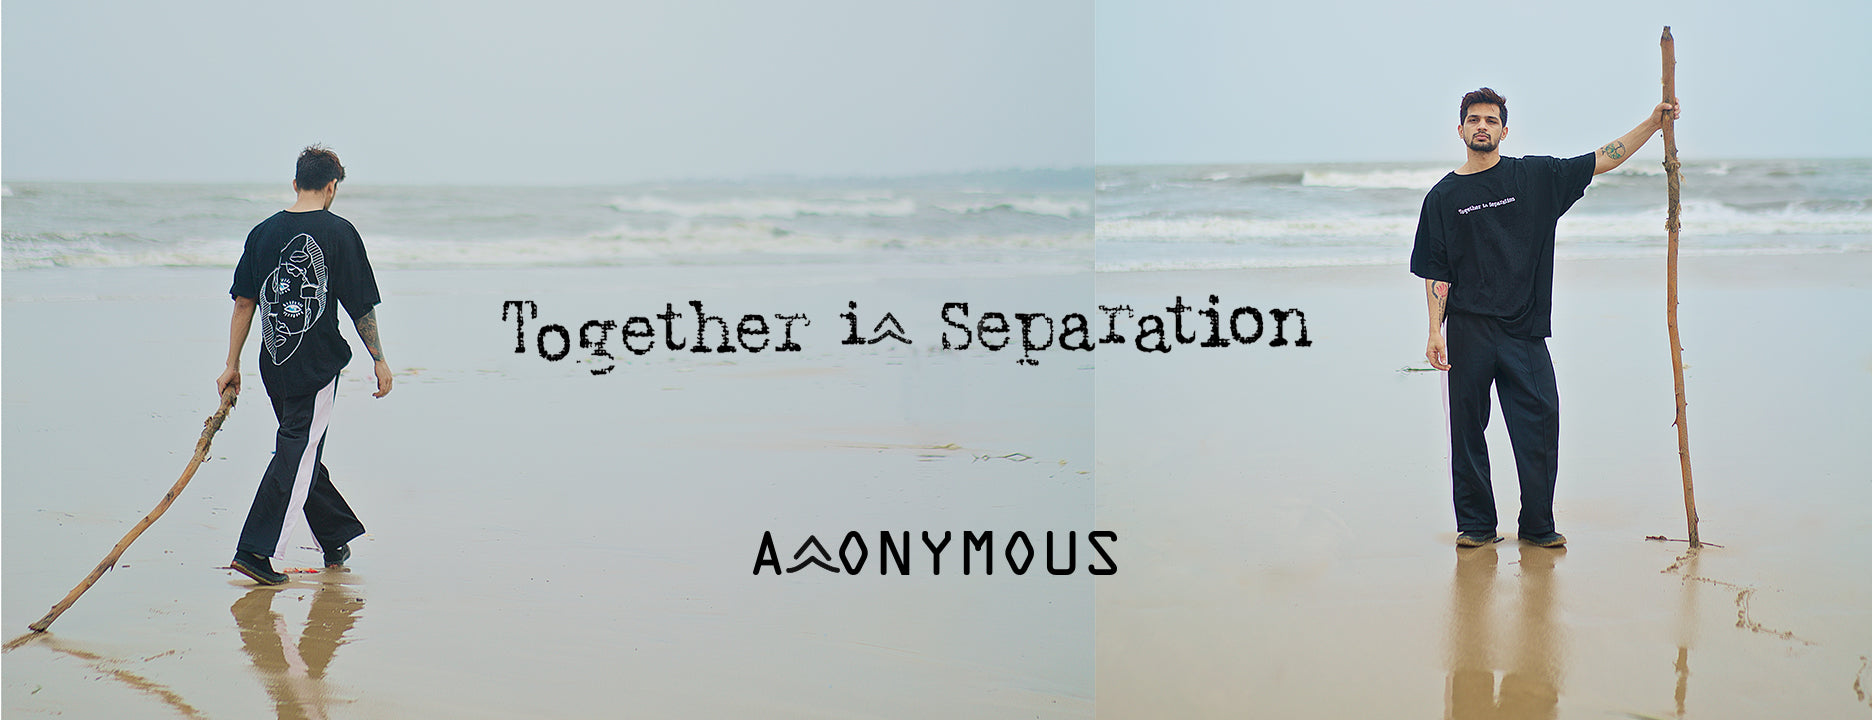 Anonymous - Together in Separation - Good Stuff